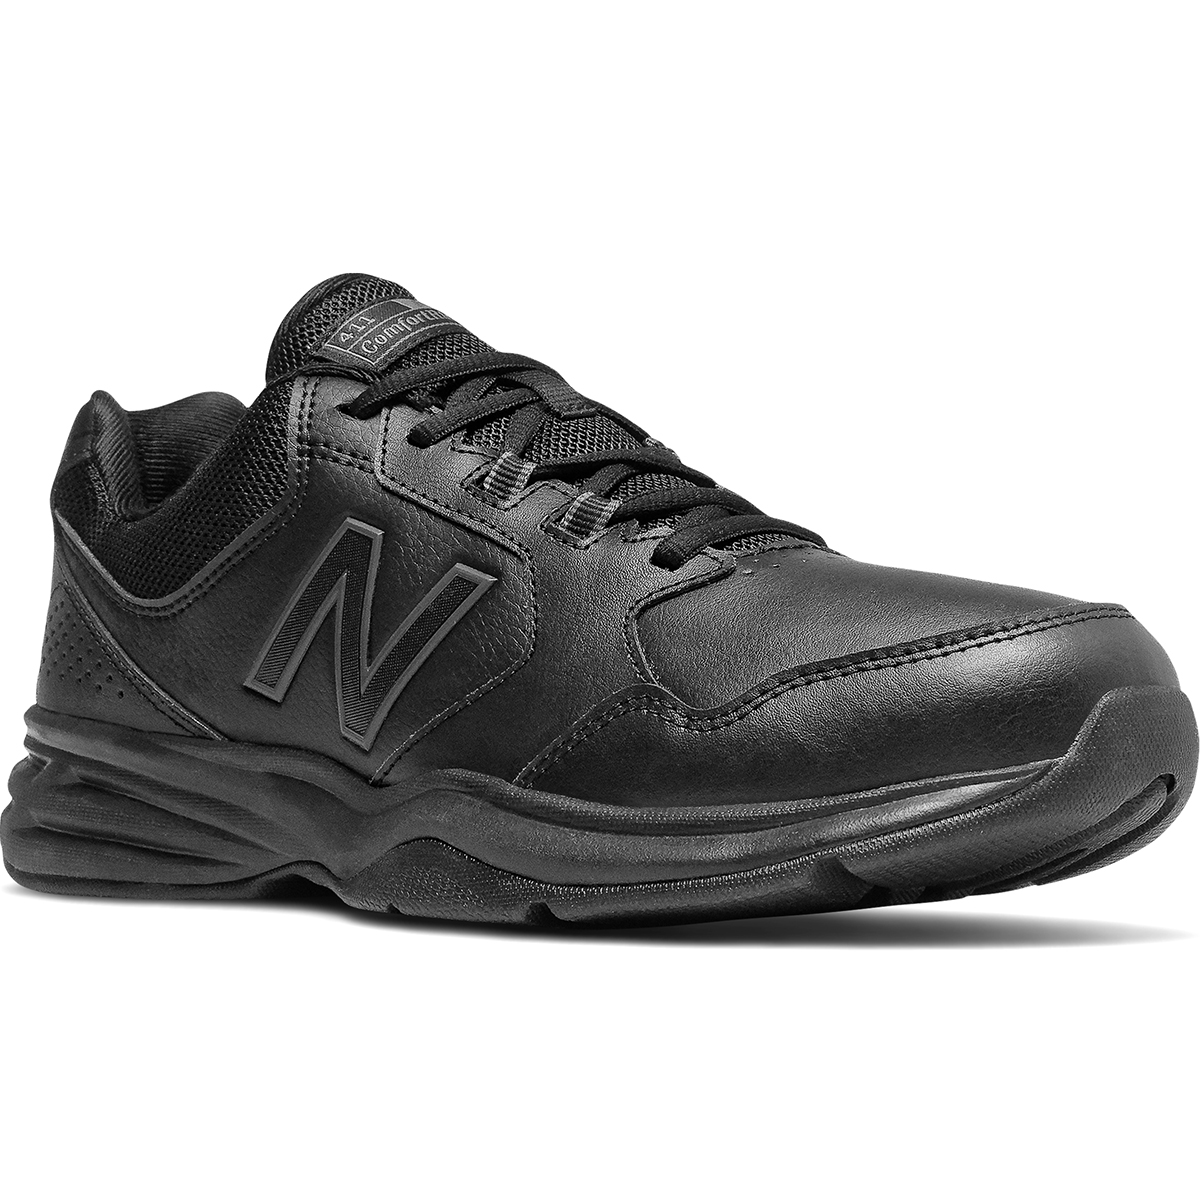 New Balance Men's 411 Walking Shoes, Wide - Black, 8